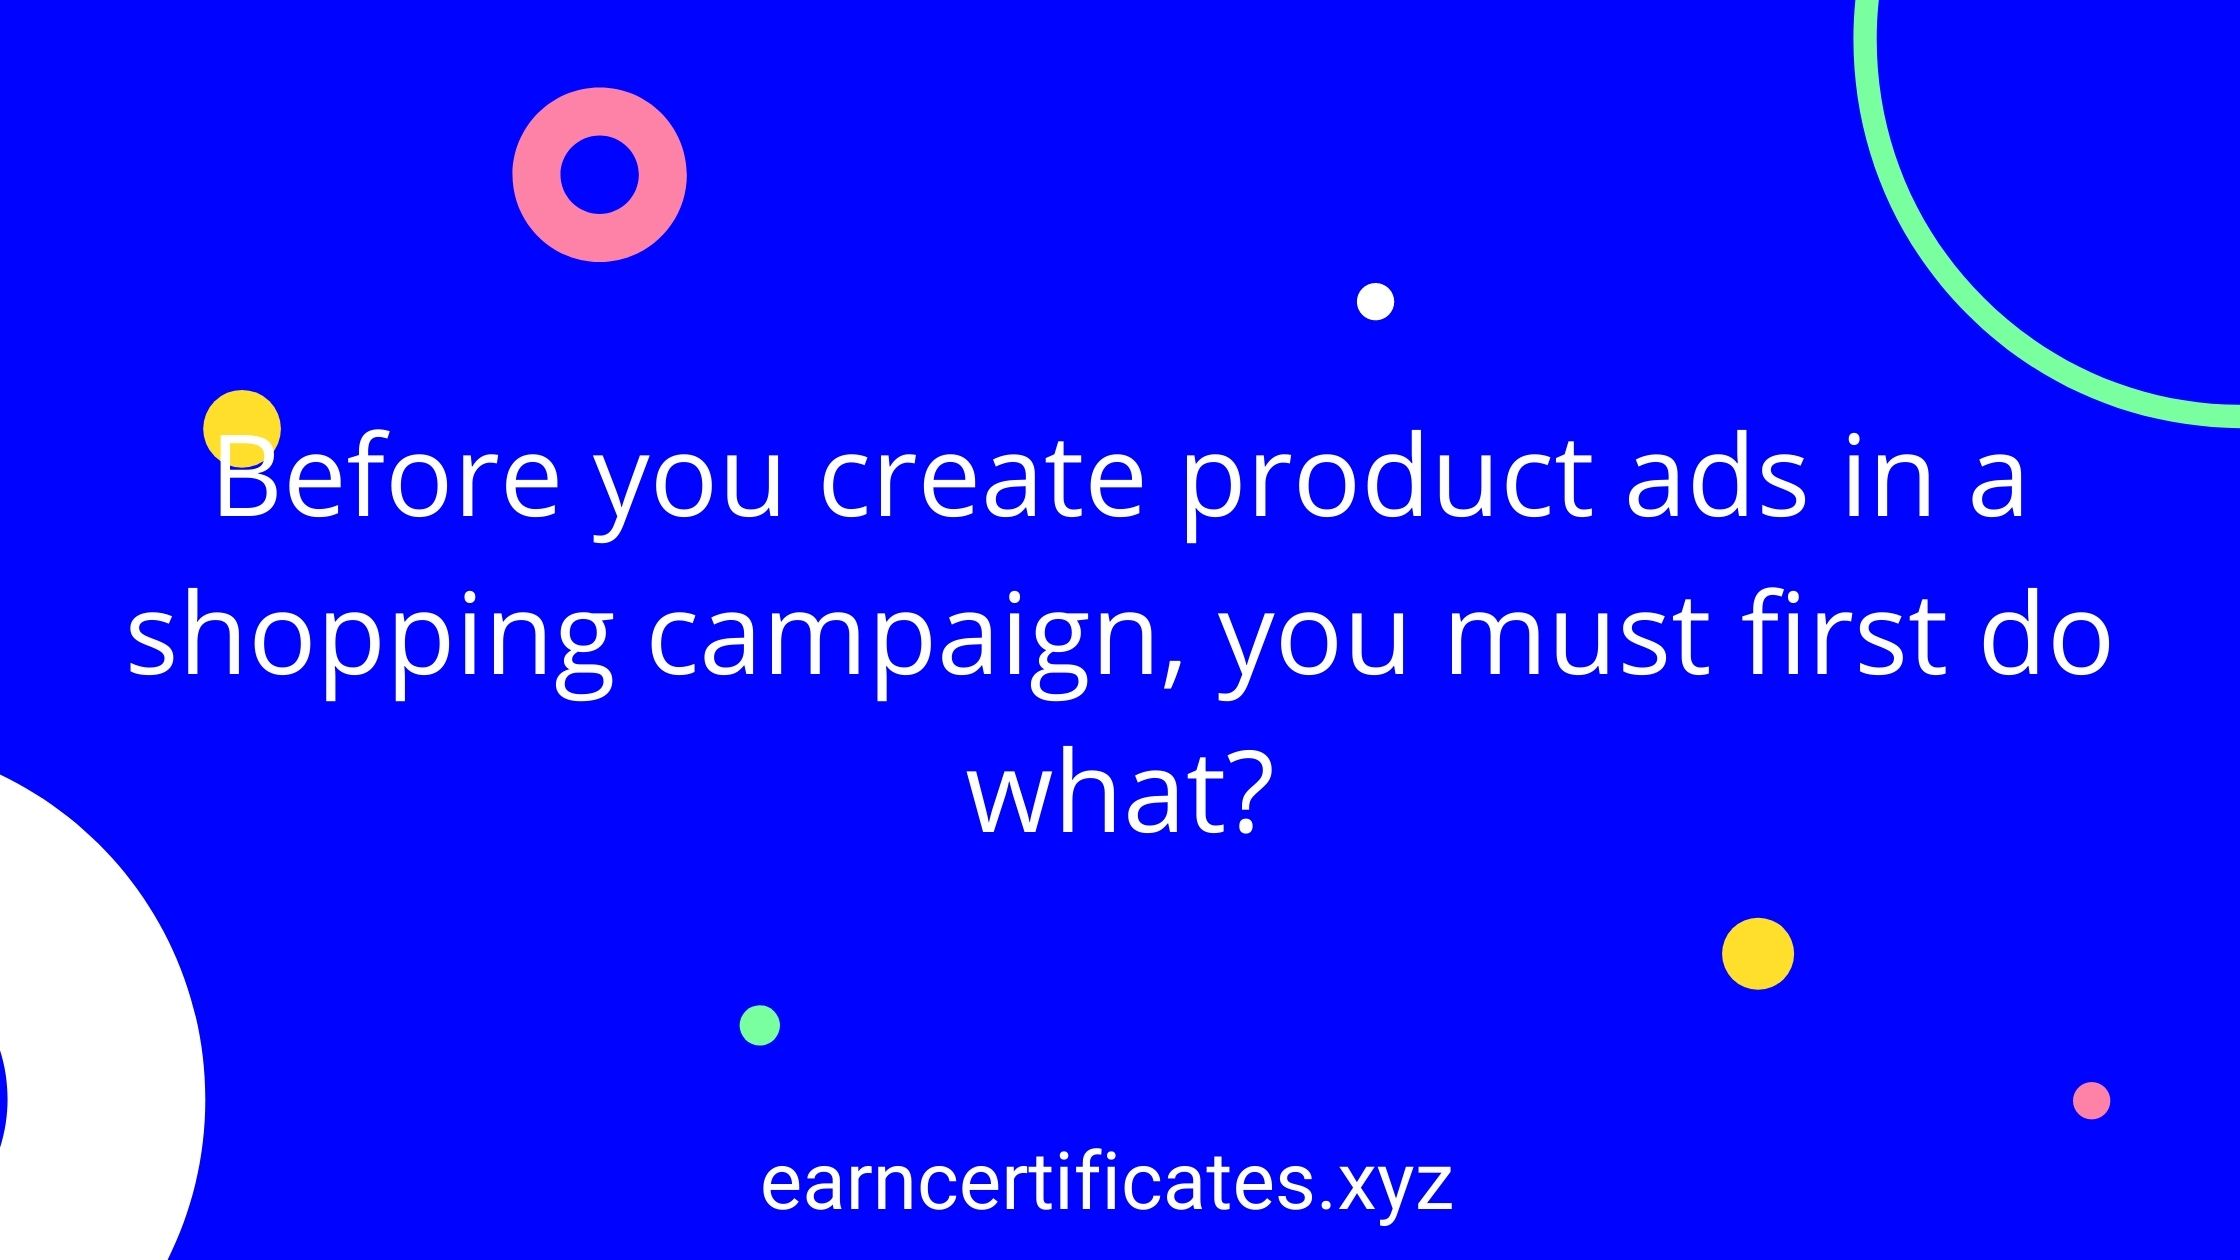 Before you create product ads in a shopping campaign, you must first do what?